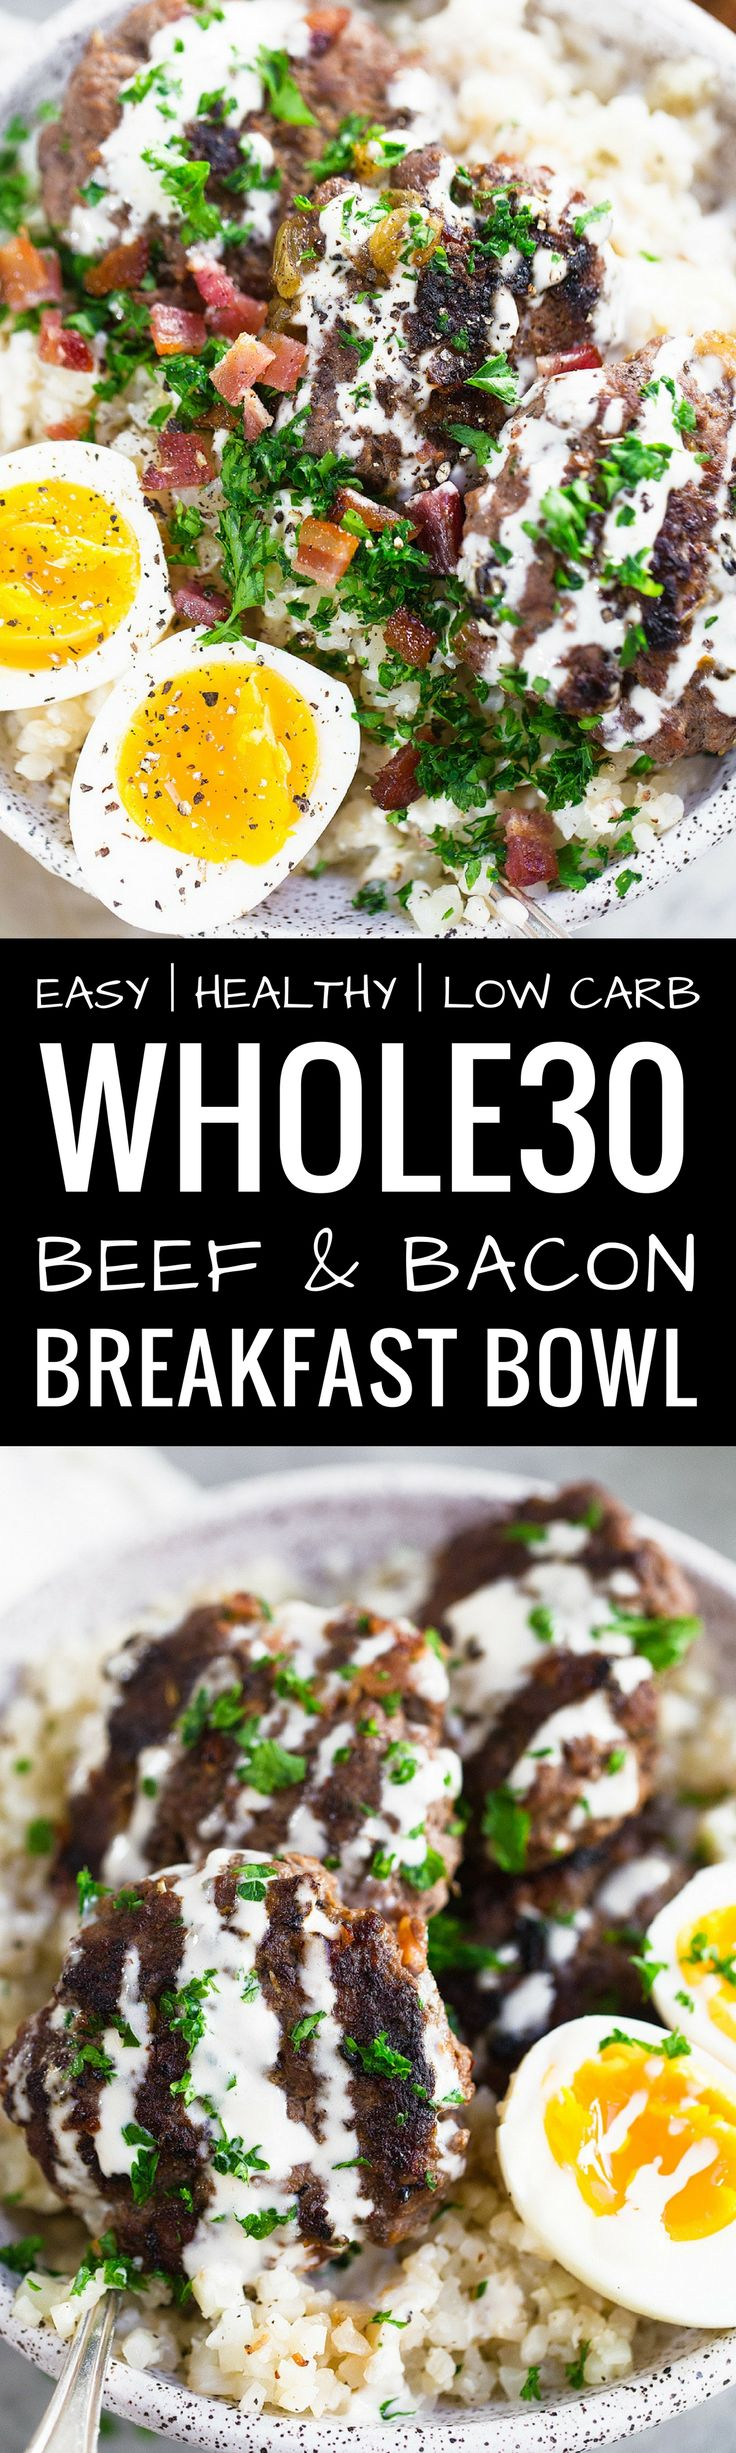 Whole30 Beef and Bacon Breakfast Bowl. THE BEST be…